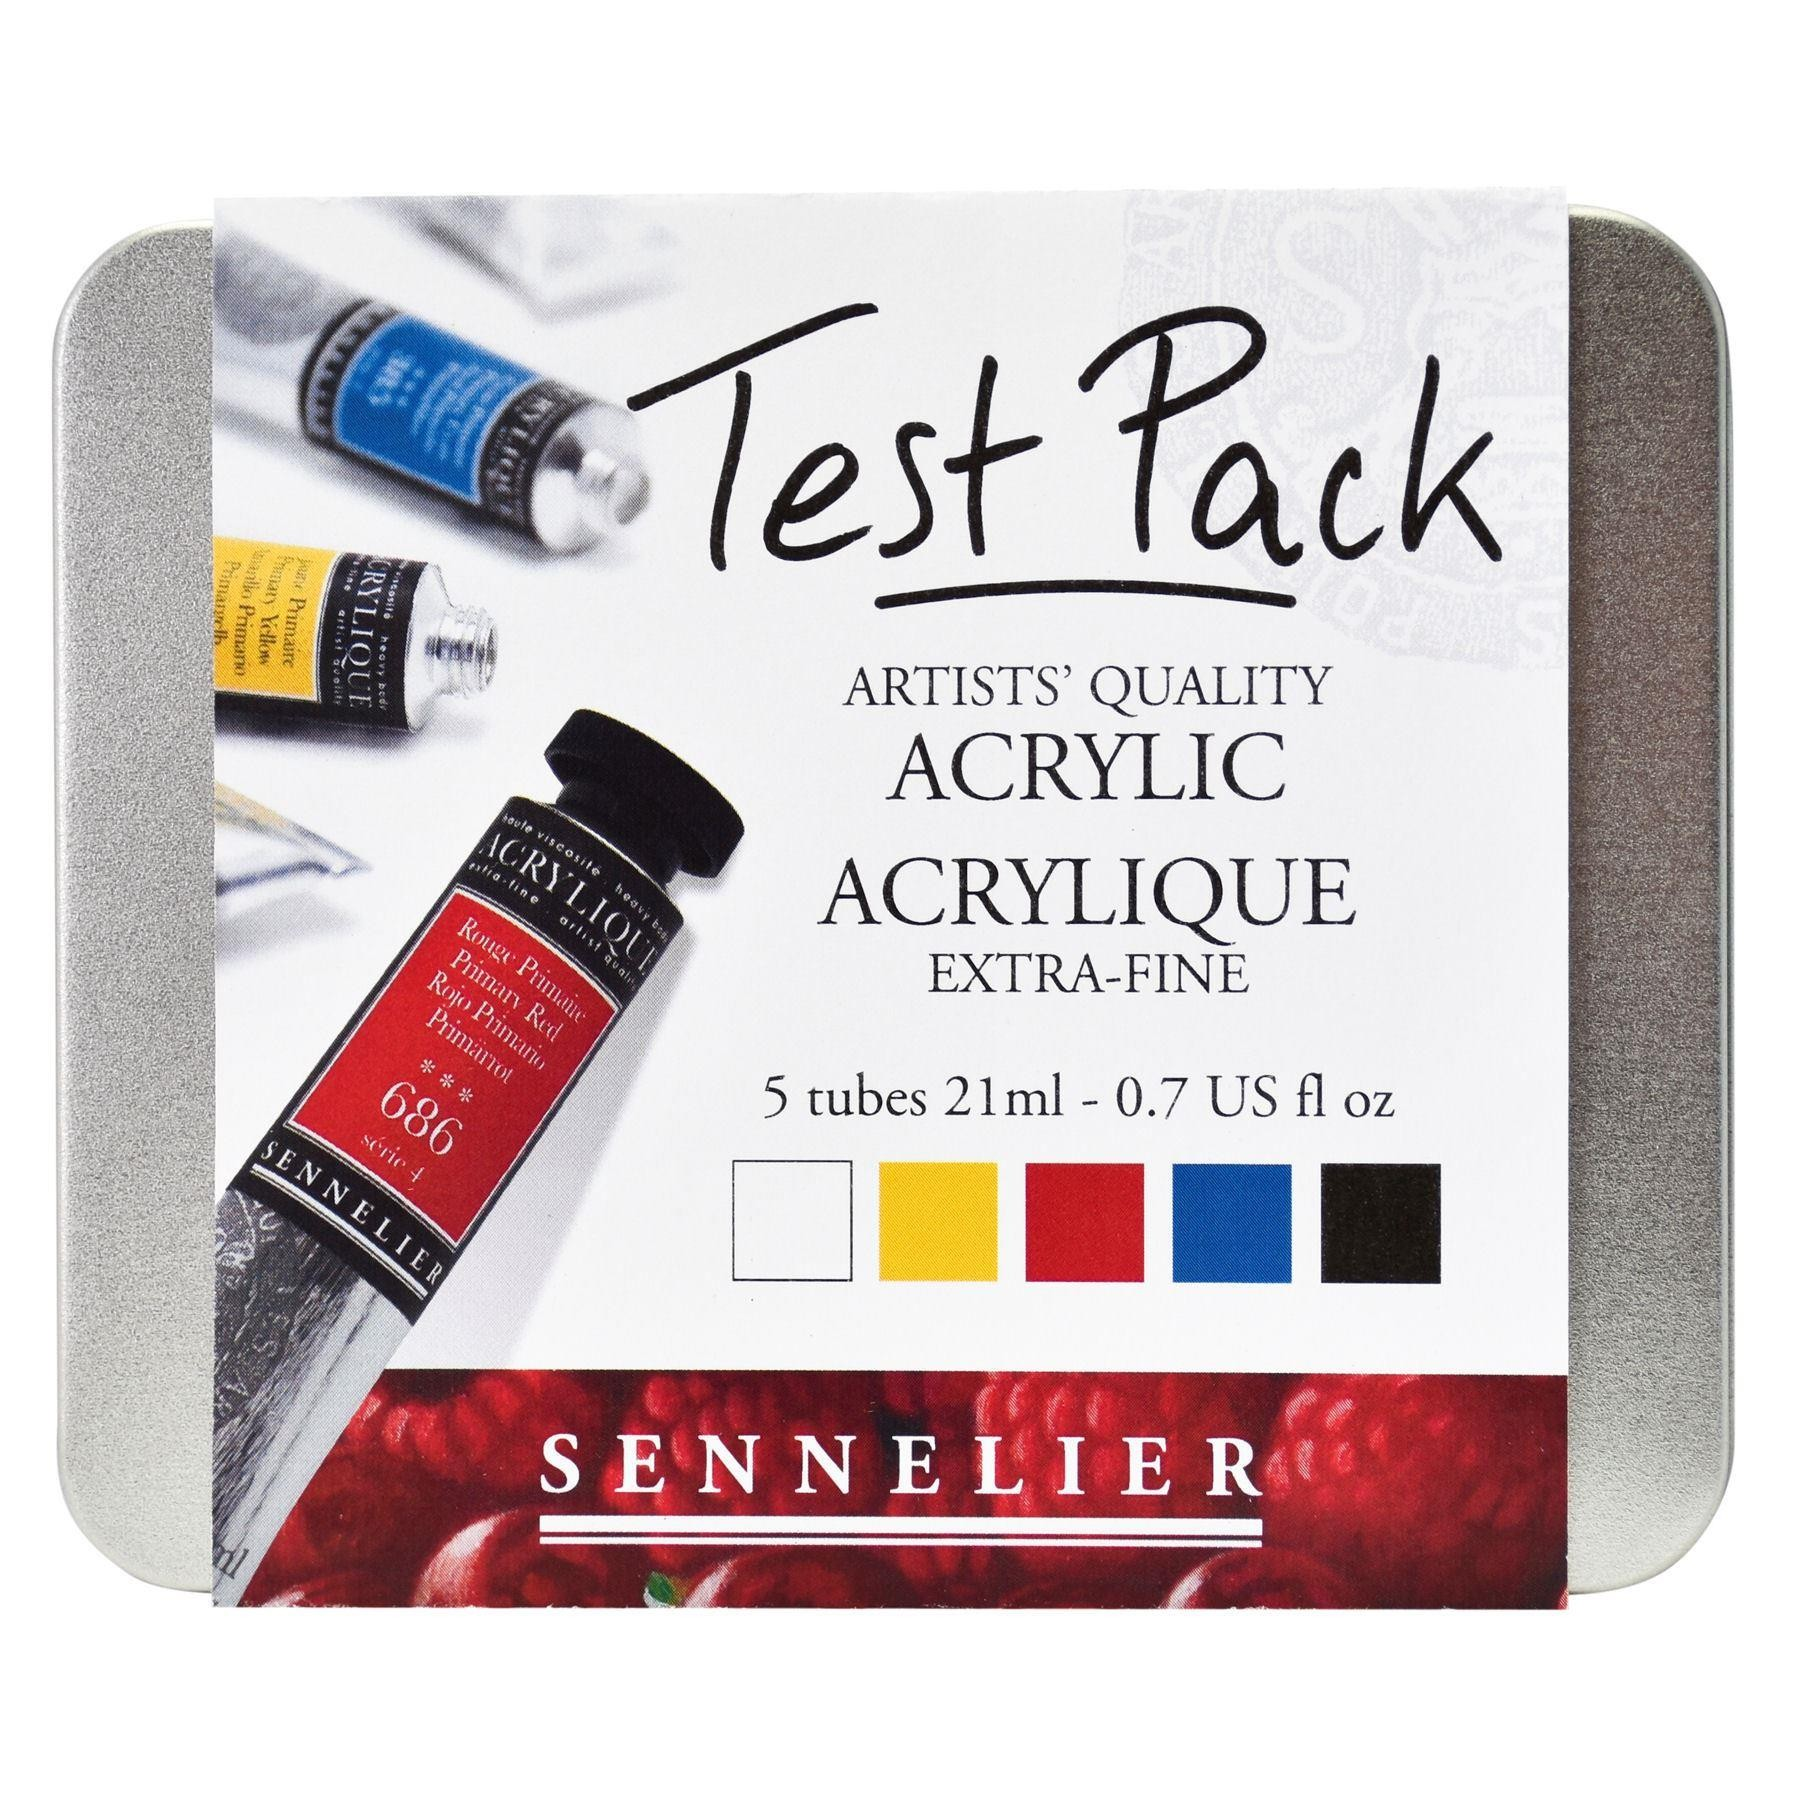 Sennelier extra fine artists acrylic paint test pack